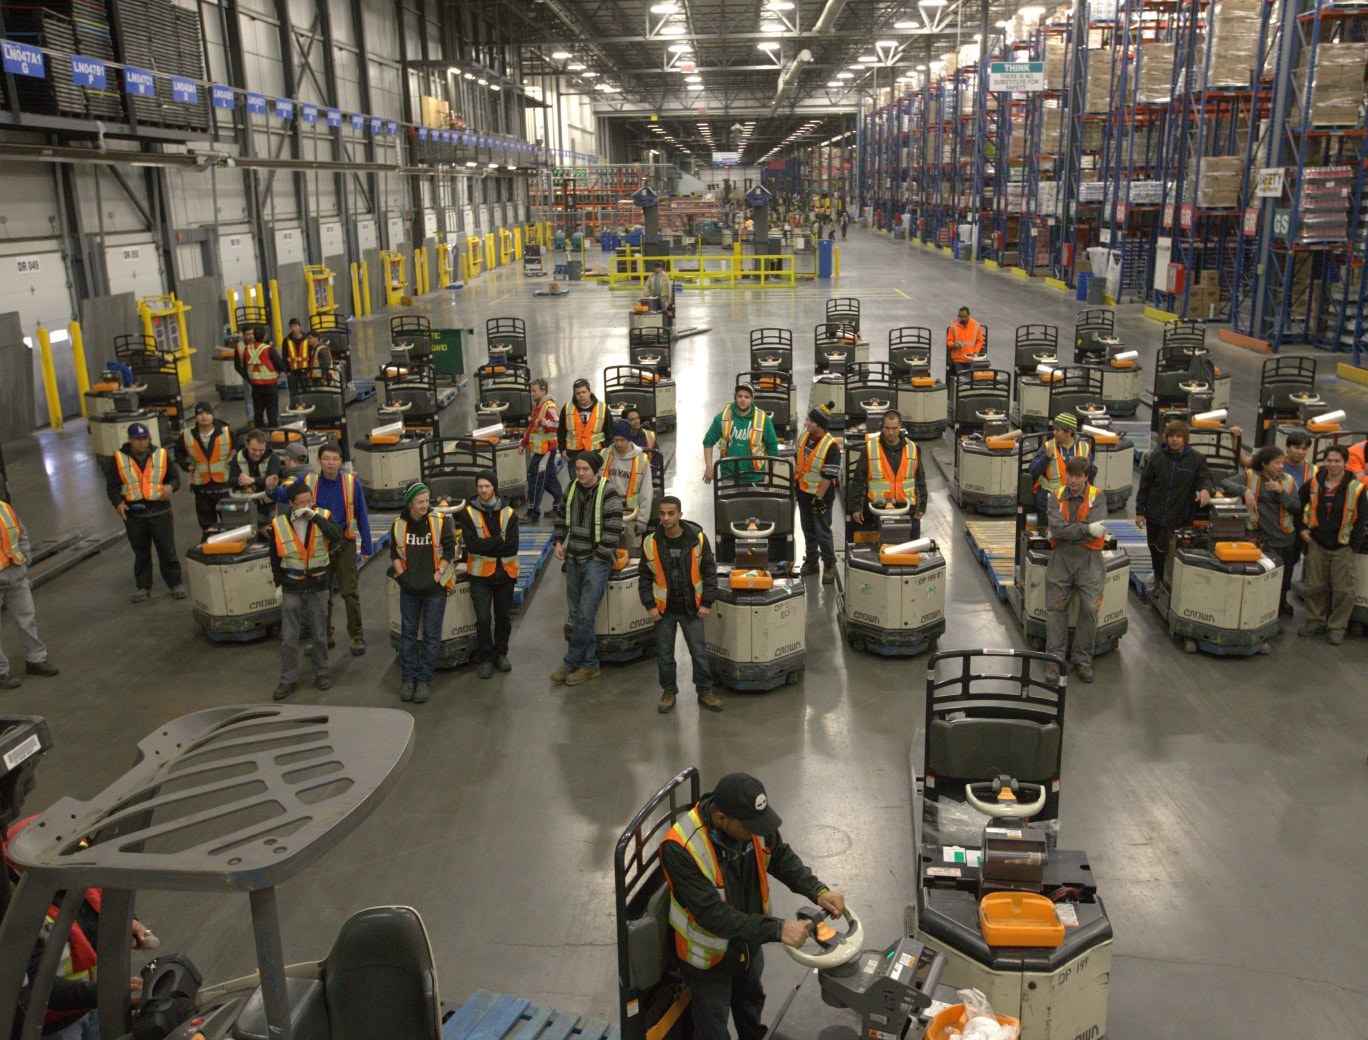 Big group of employees posing for a picture in a large warehouse.